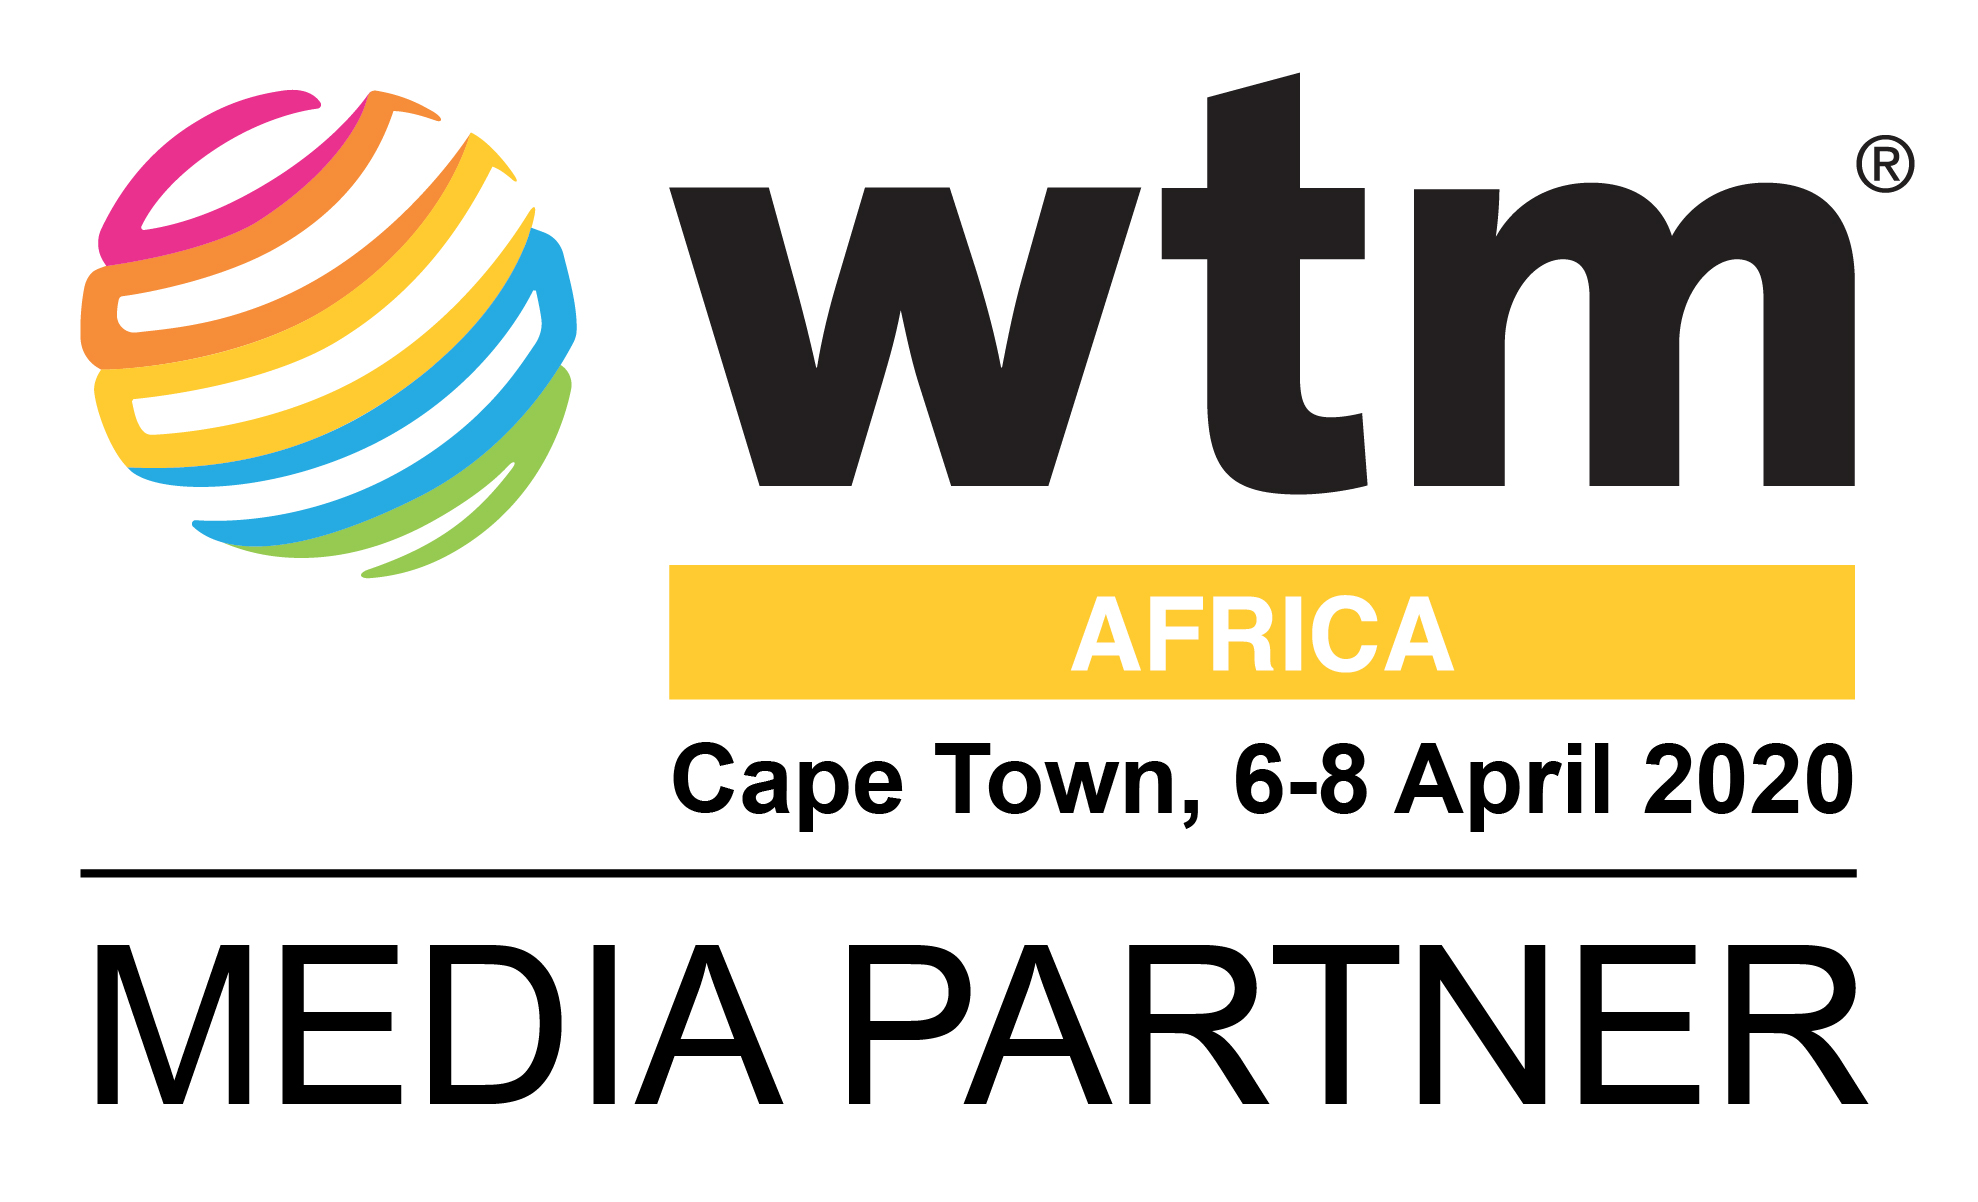 ATCNews is once again a Gold Media Partner for World Travel Market Africa 2020